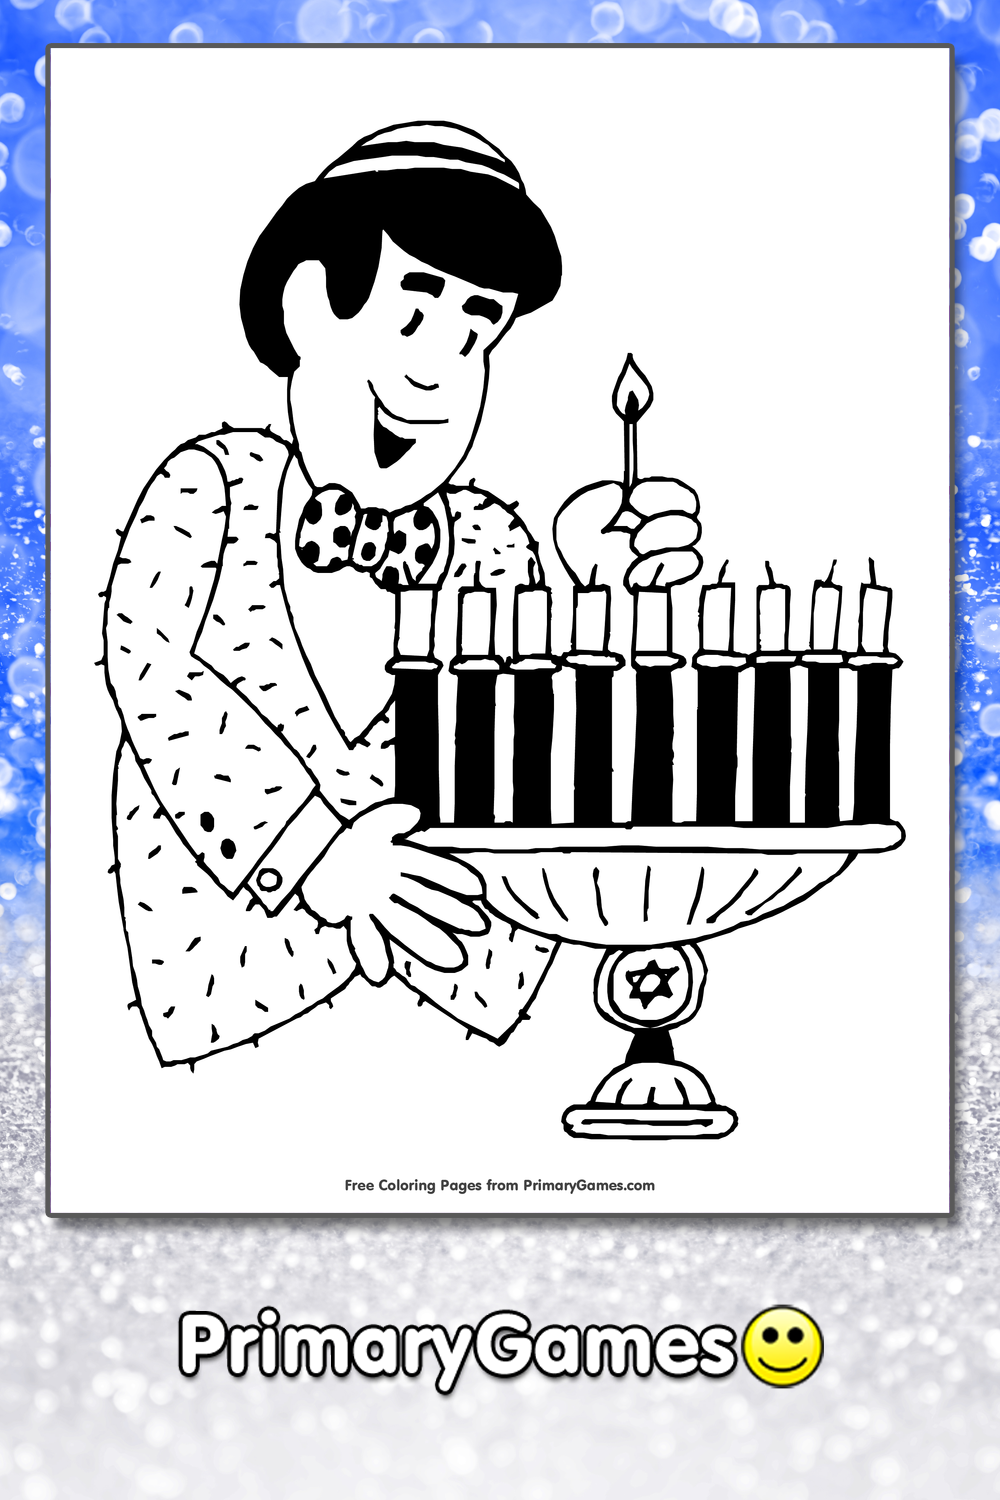 Hanukkah Coloring Pages PrimaryGames Play Free Online Games